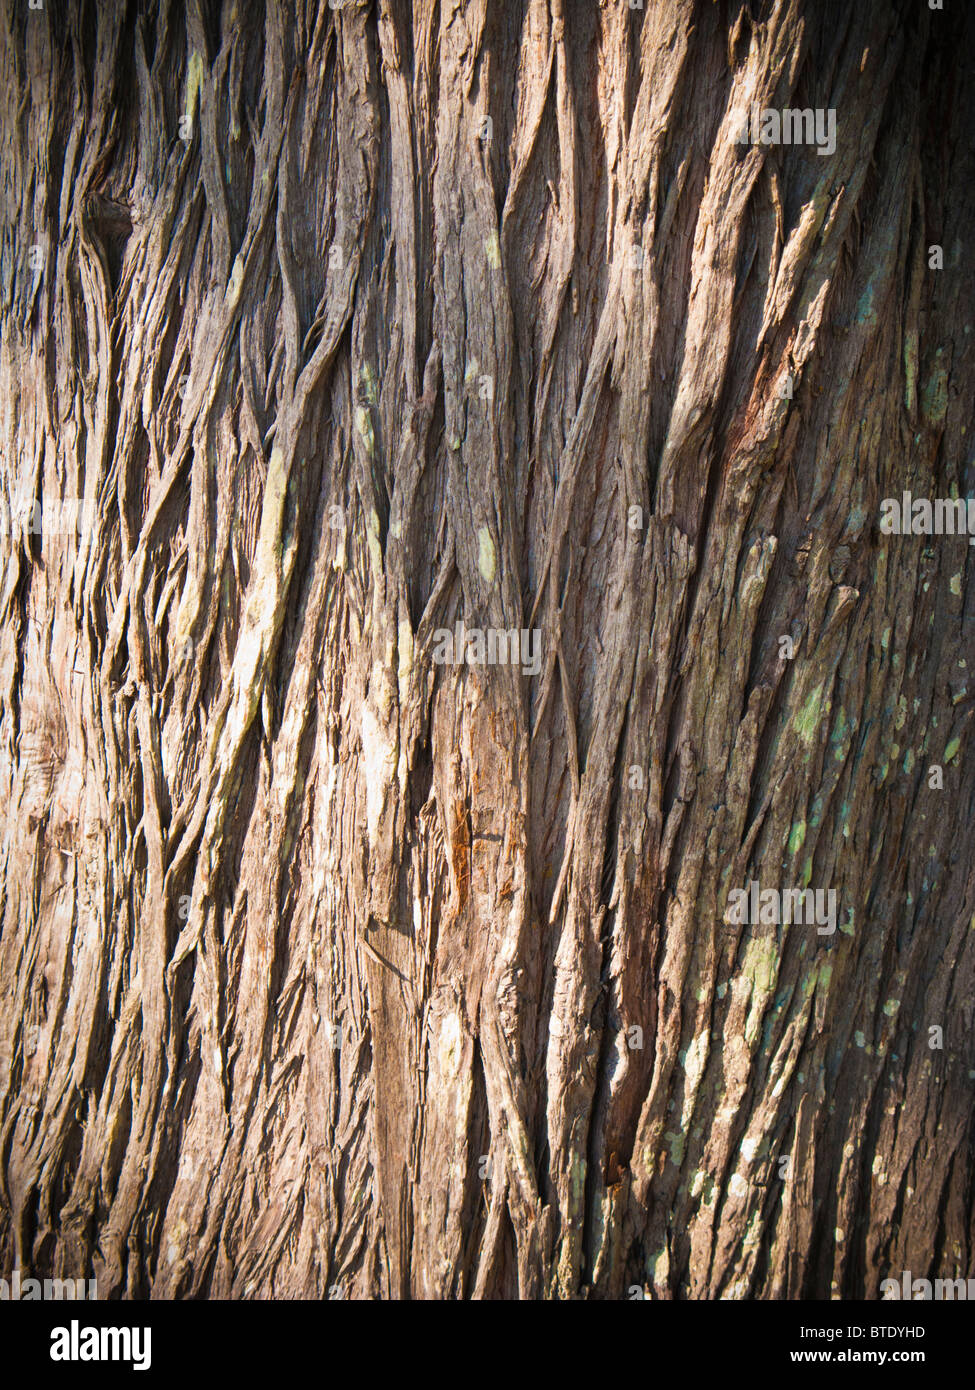 L'écorce des arbres close up Photo Stock